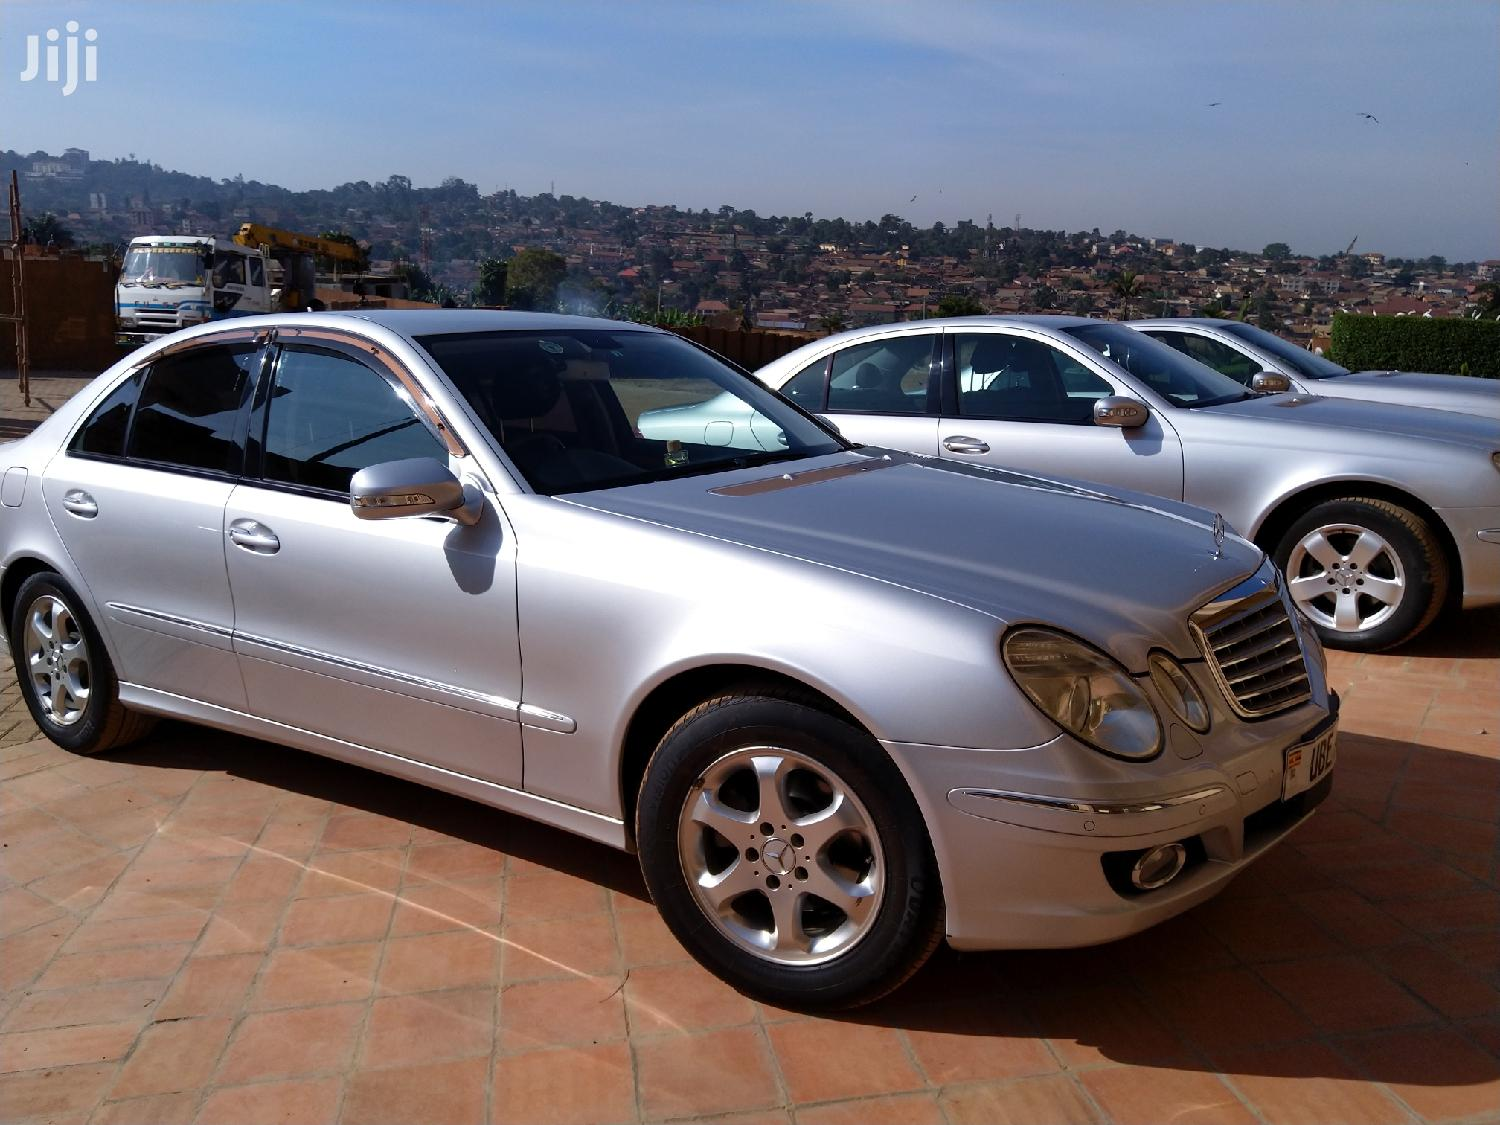 Executive Bridal Cars Perfect For Your Occasion   Automotive Services for sale in Kampala, Central Region, Uganda